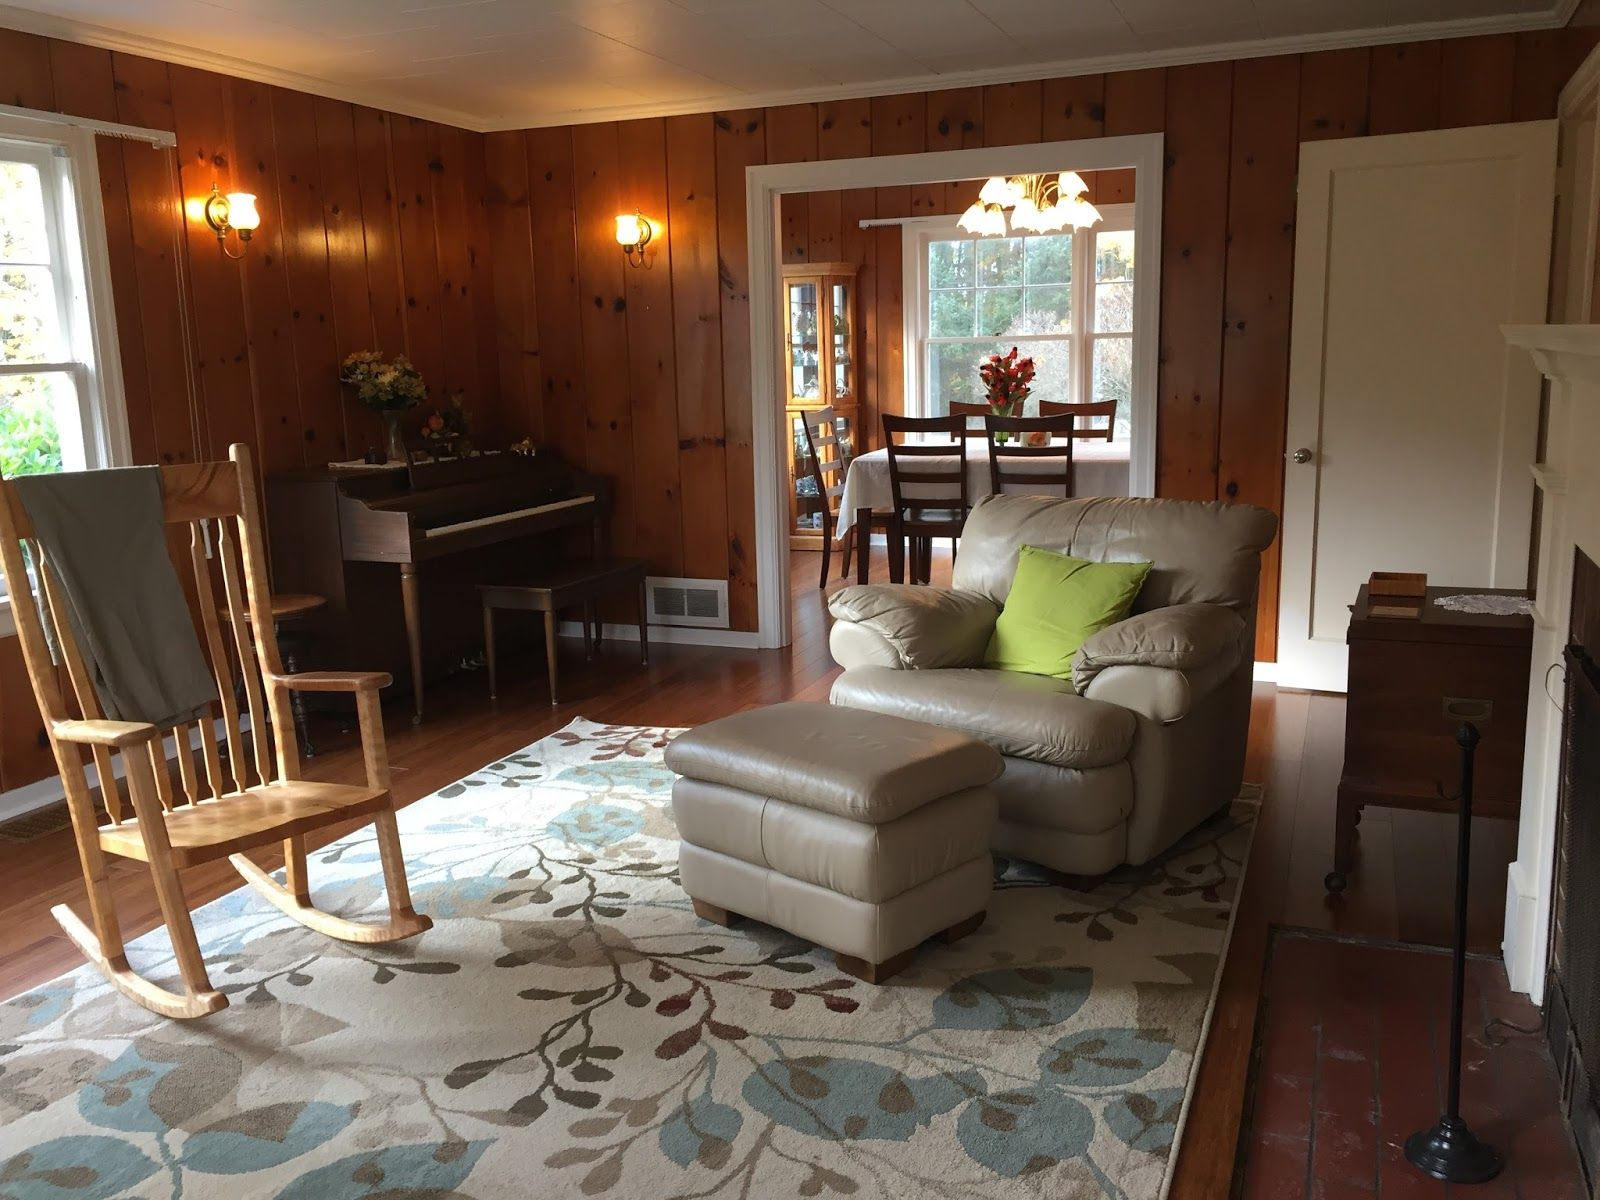 Decorating A Room With Knotty Pine Walls Knotty Pine Walls Knotty Pine Living Room Pine Walls